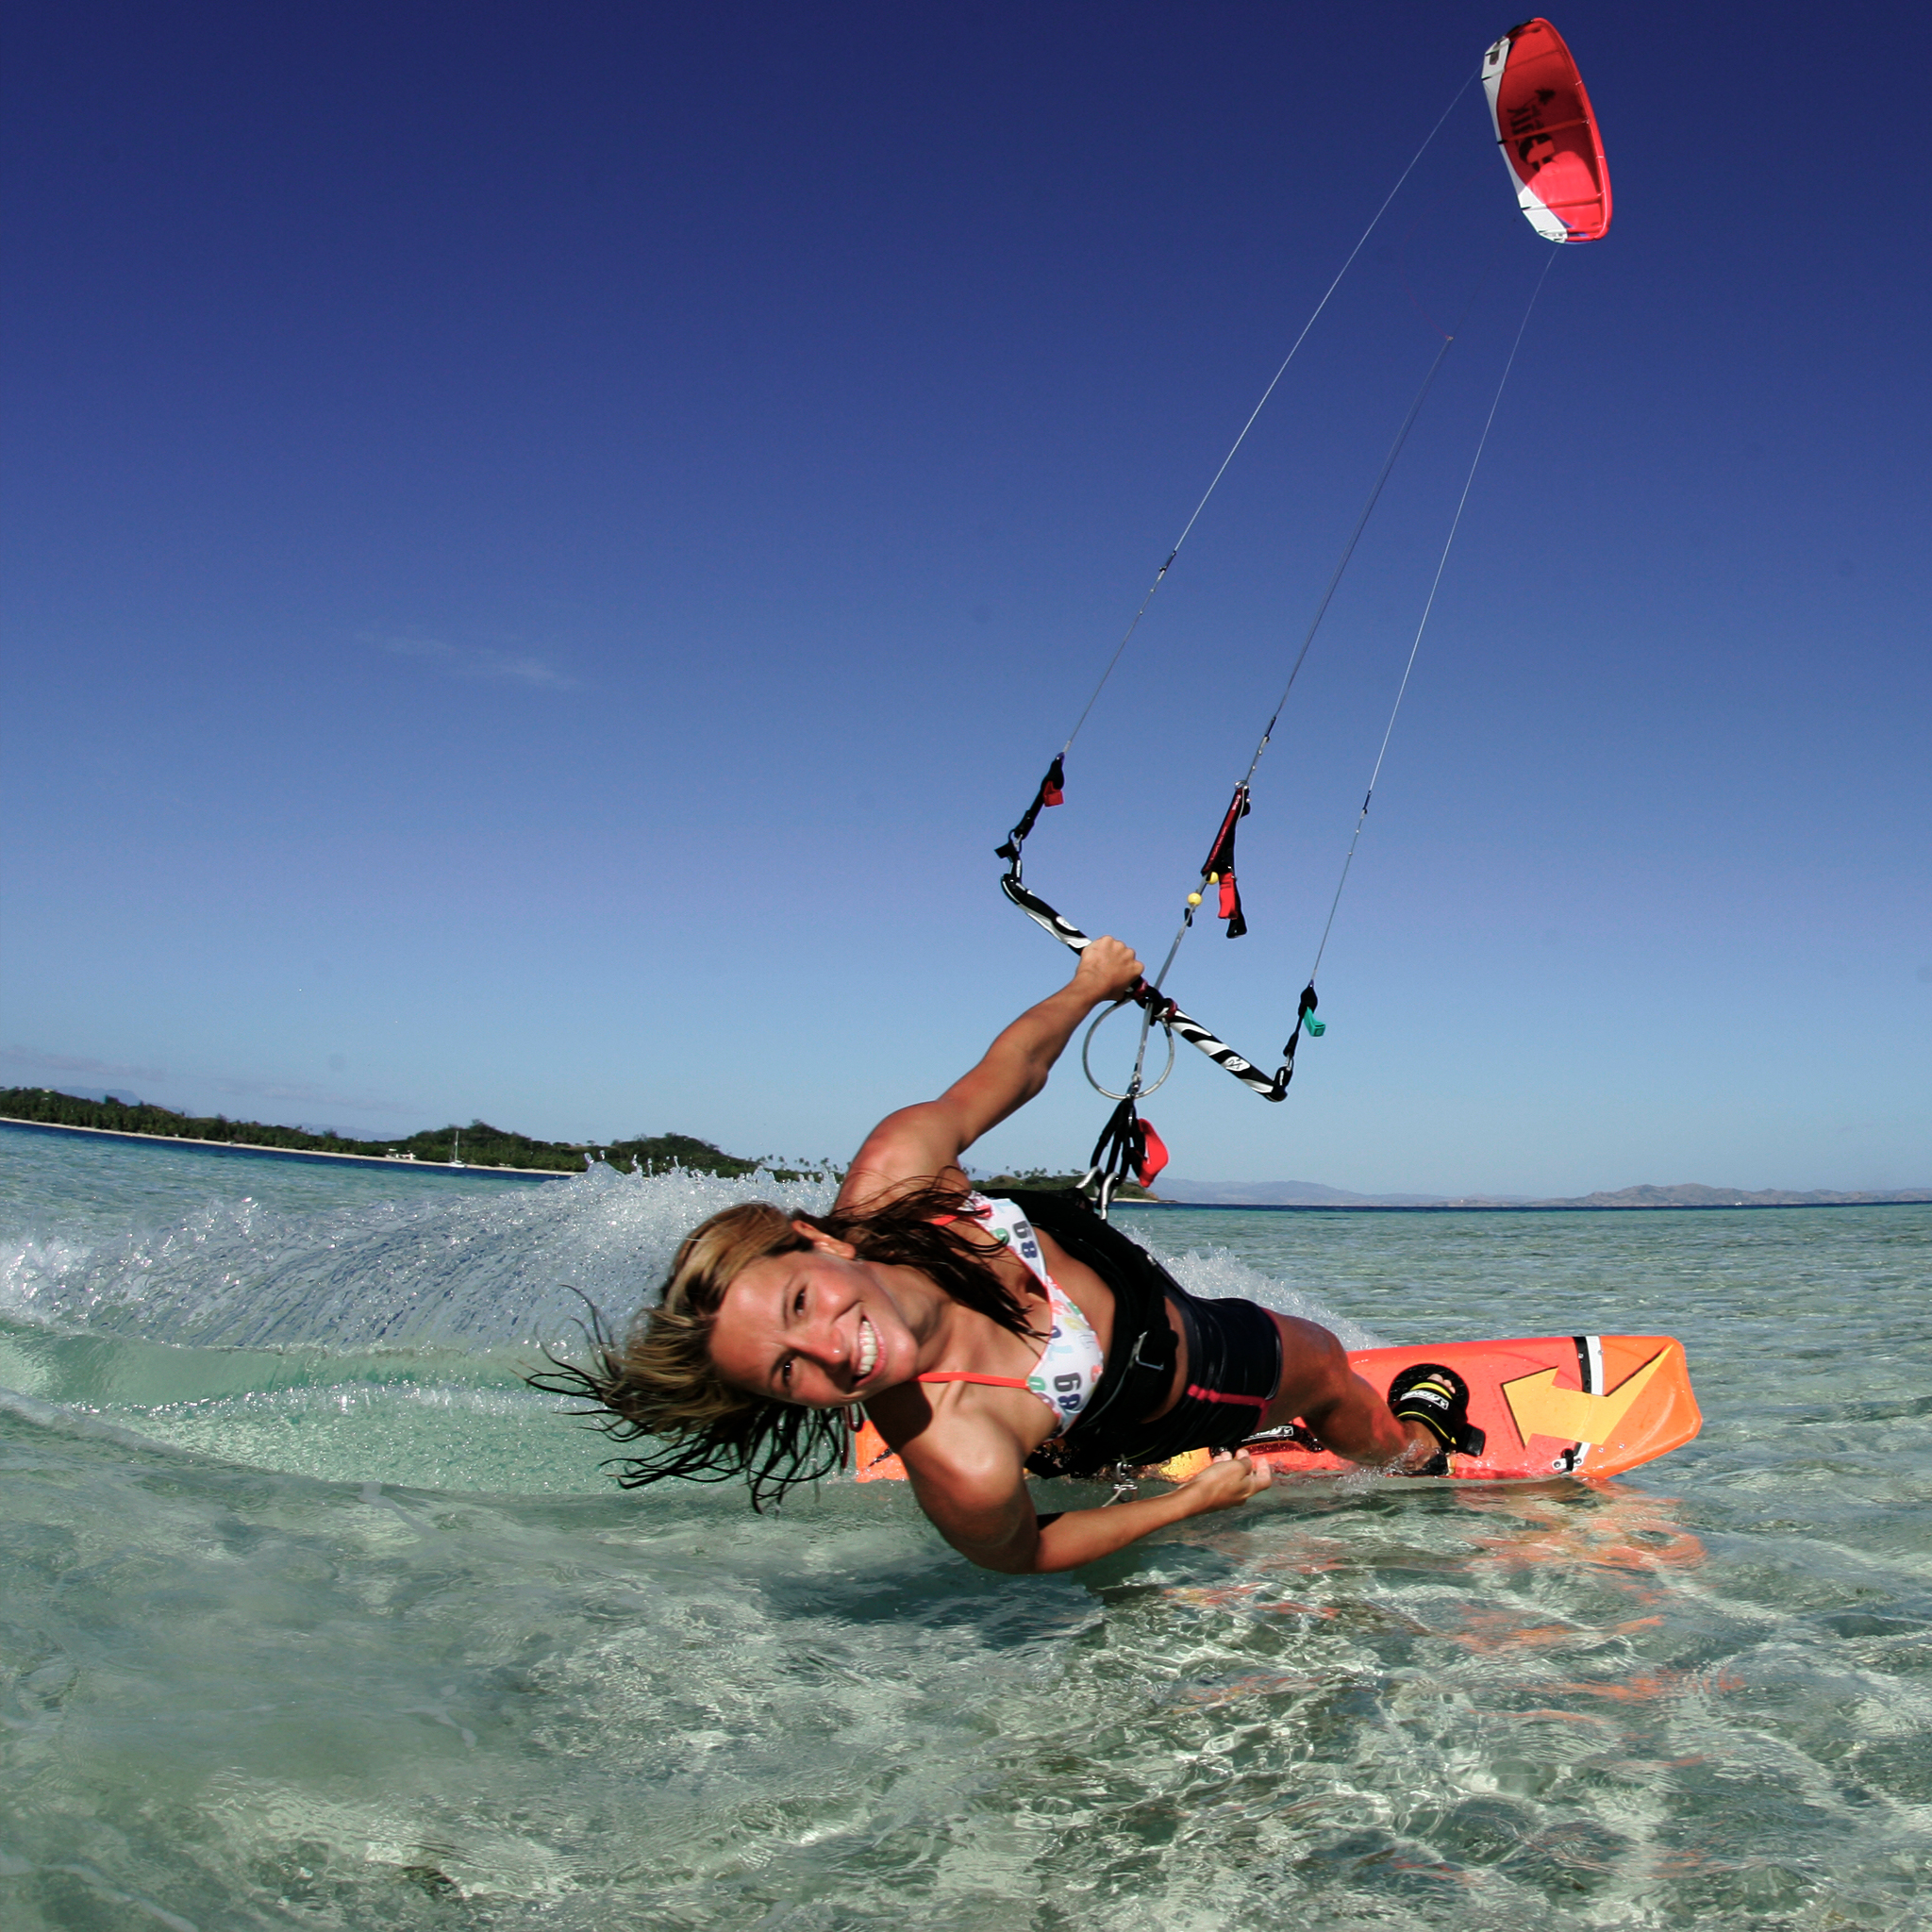 2048x2048 - Kitesurfing Wallpapers 24